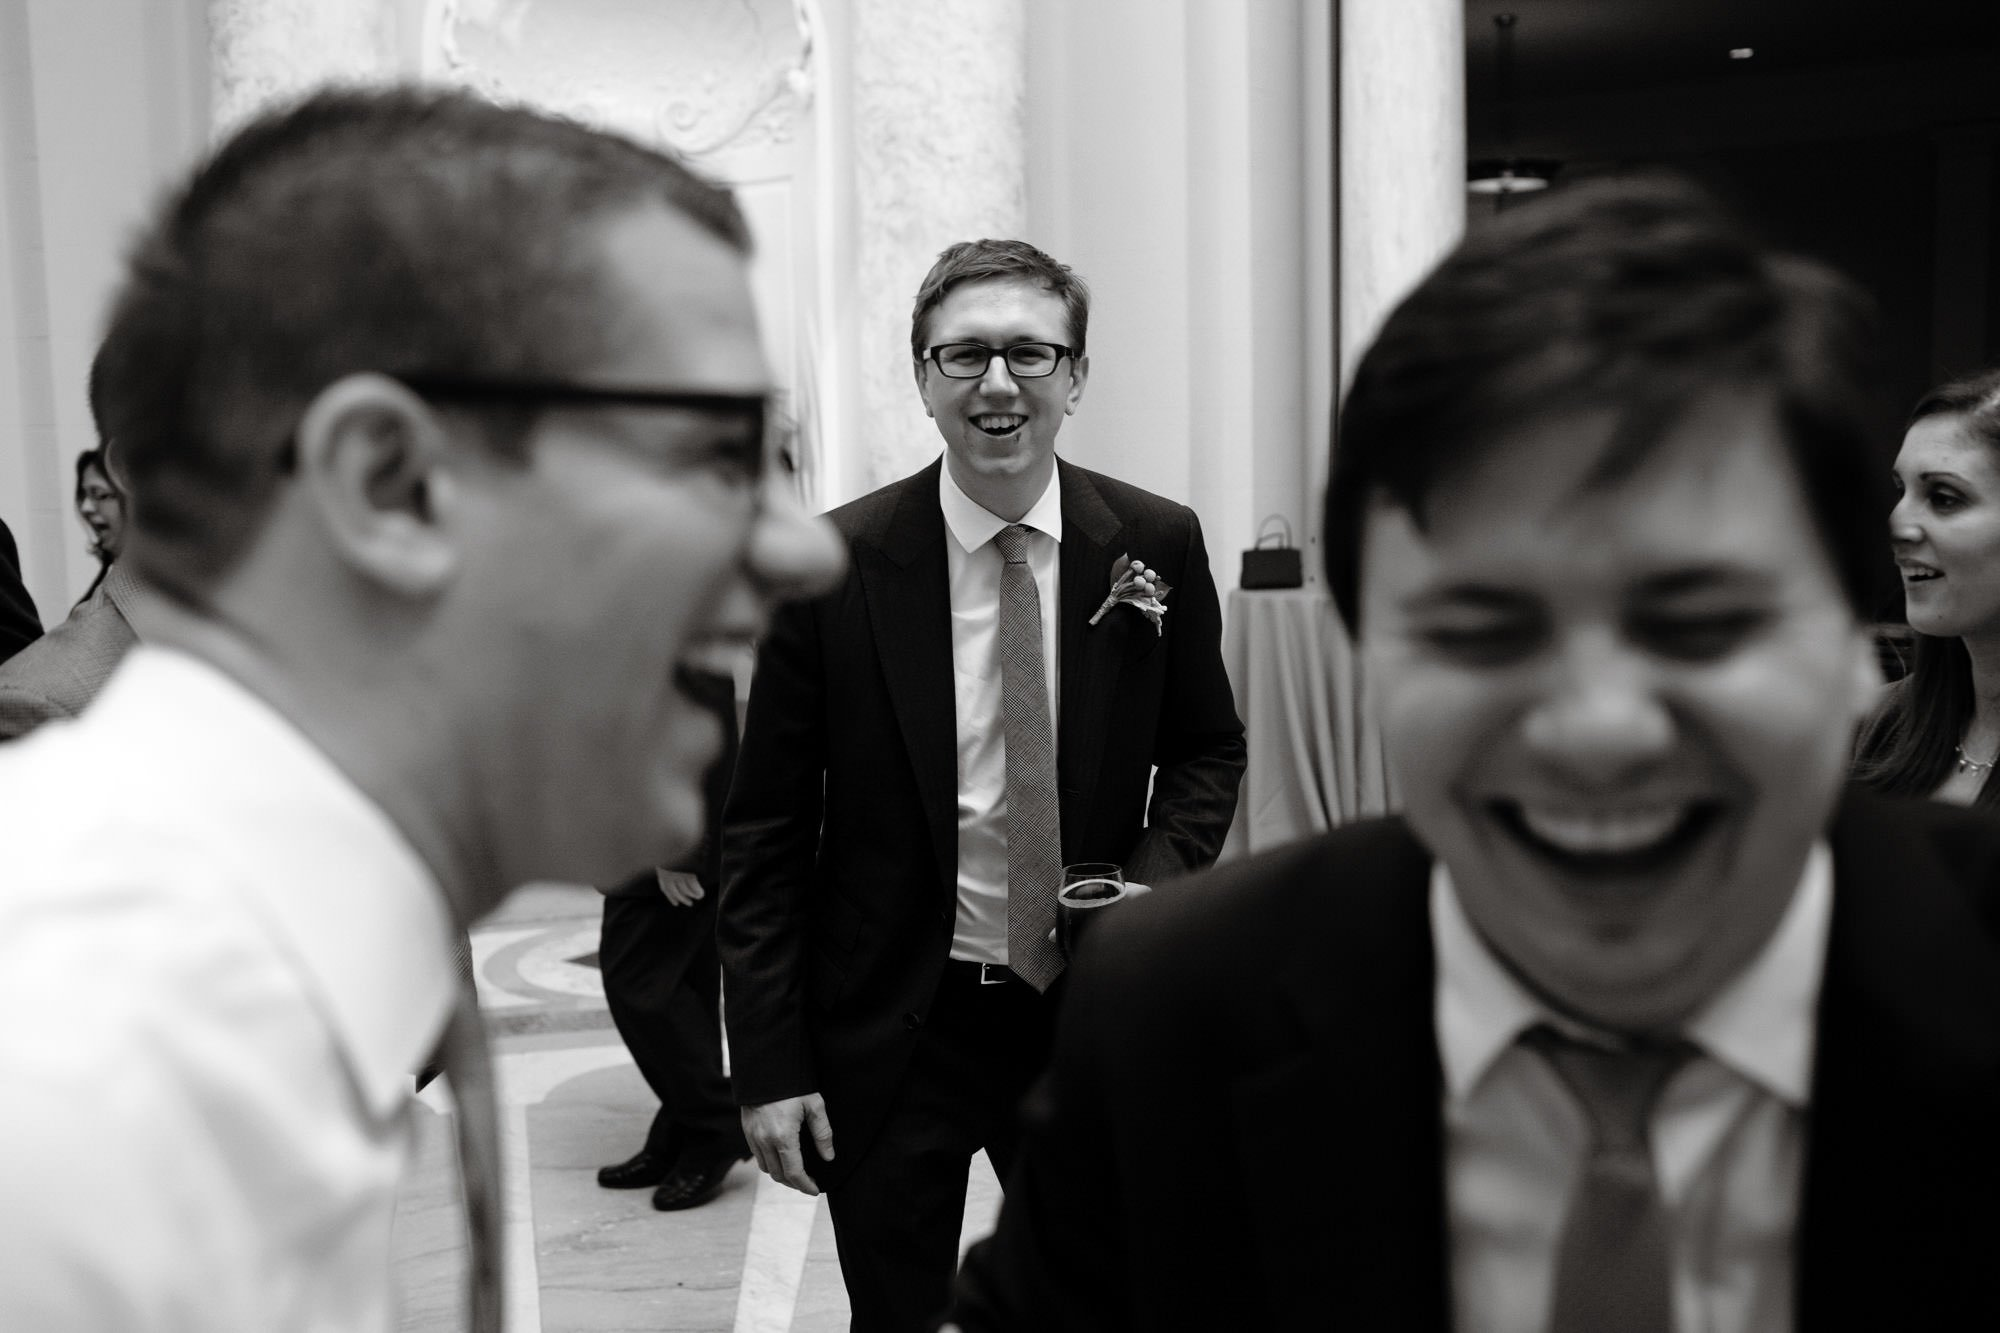 The groom laughs with friends during the Carnegie Institute for Science Wedding reception.